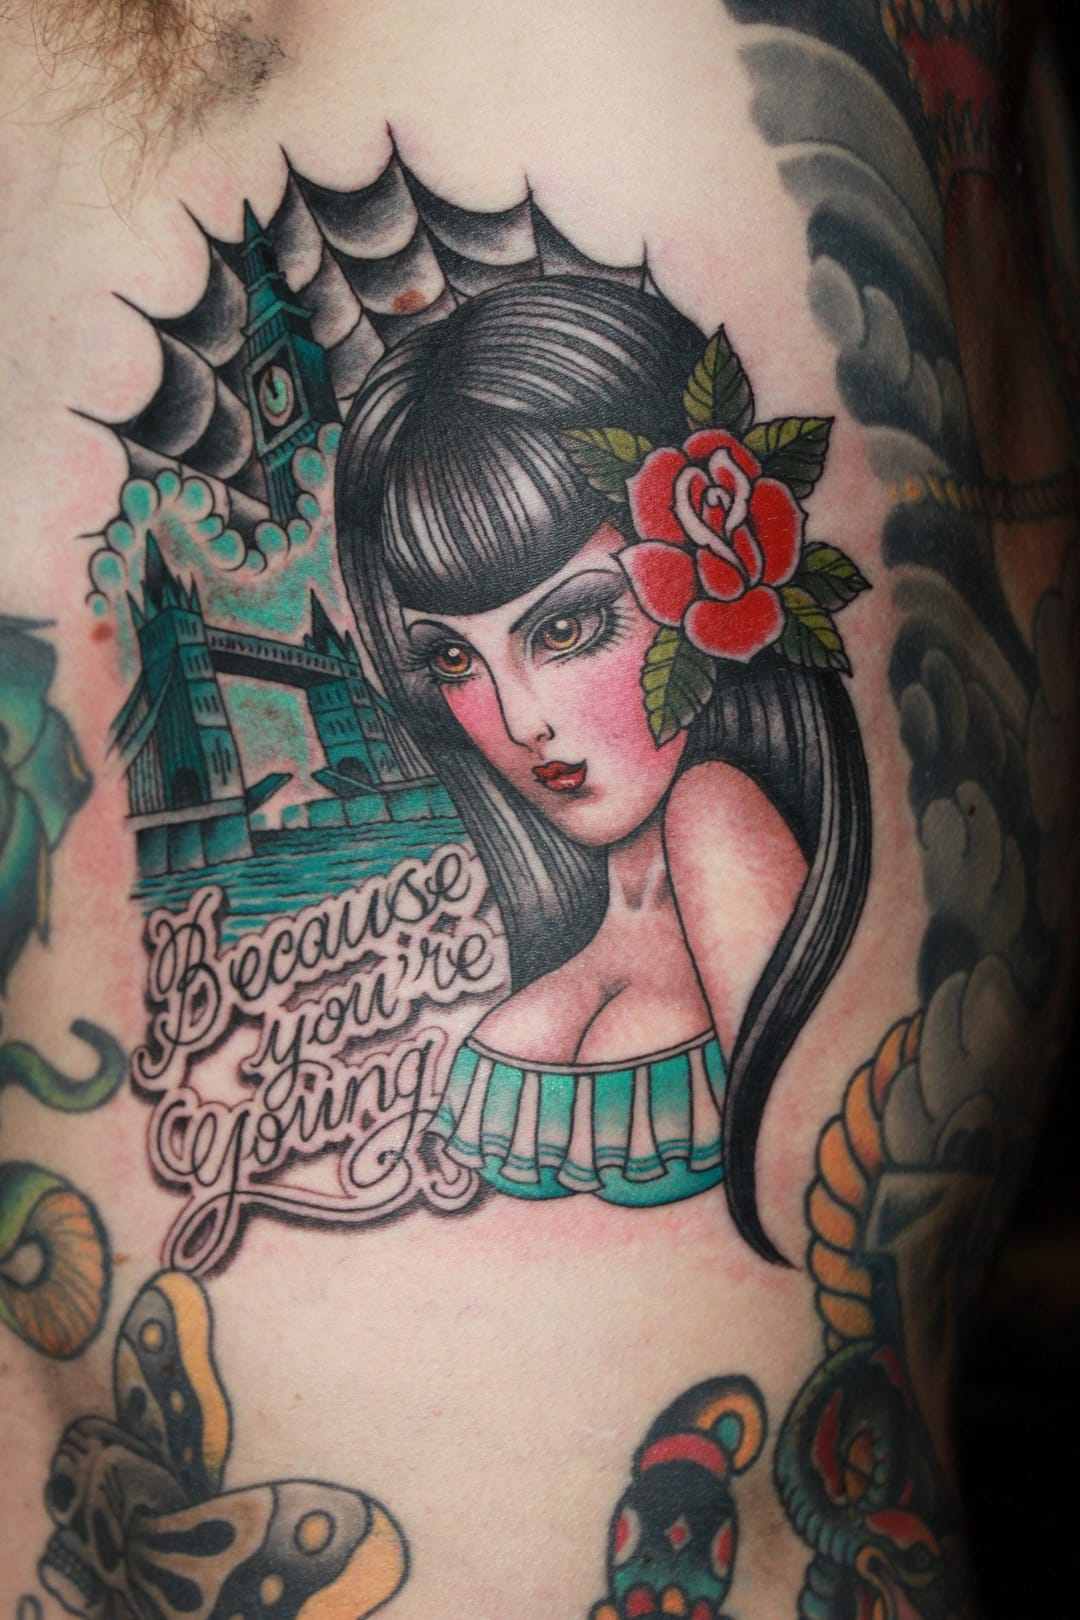 Great tattoo by Valerie Vargas.